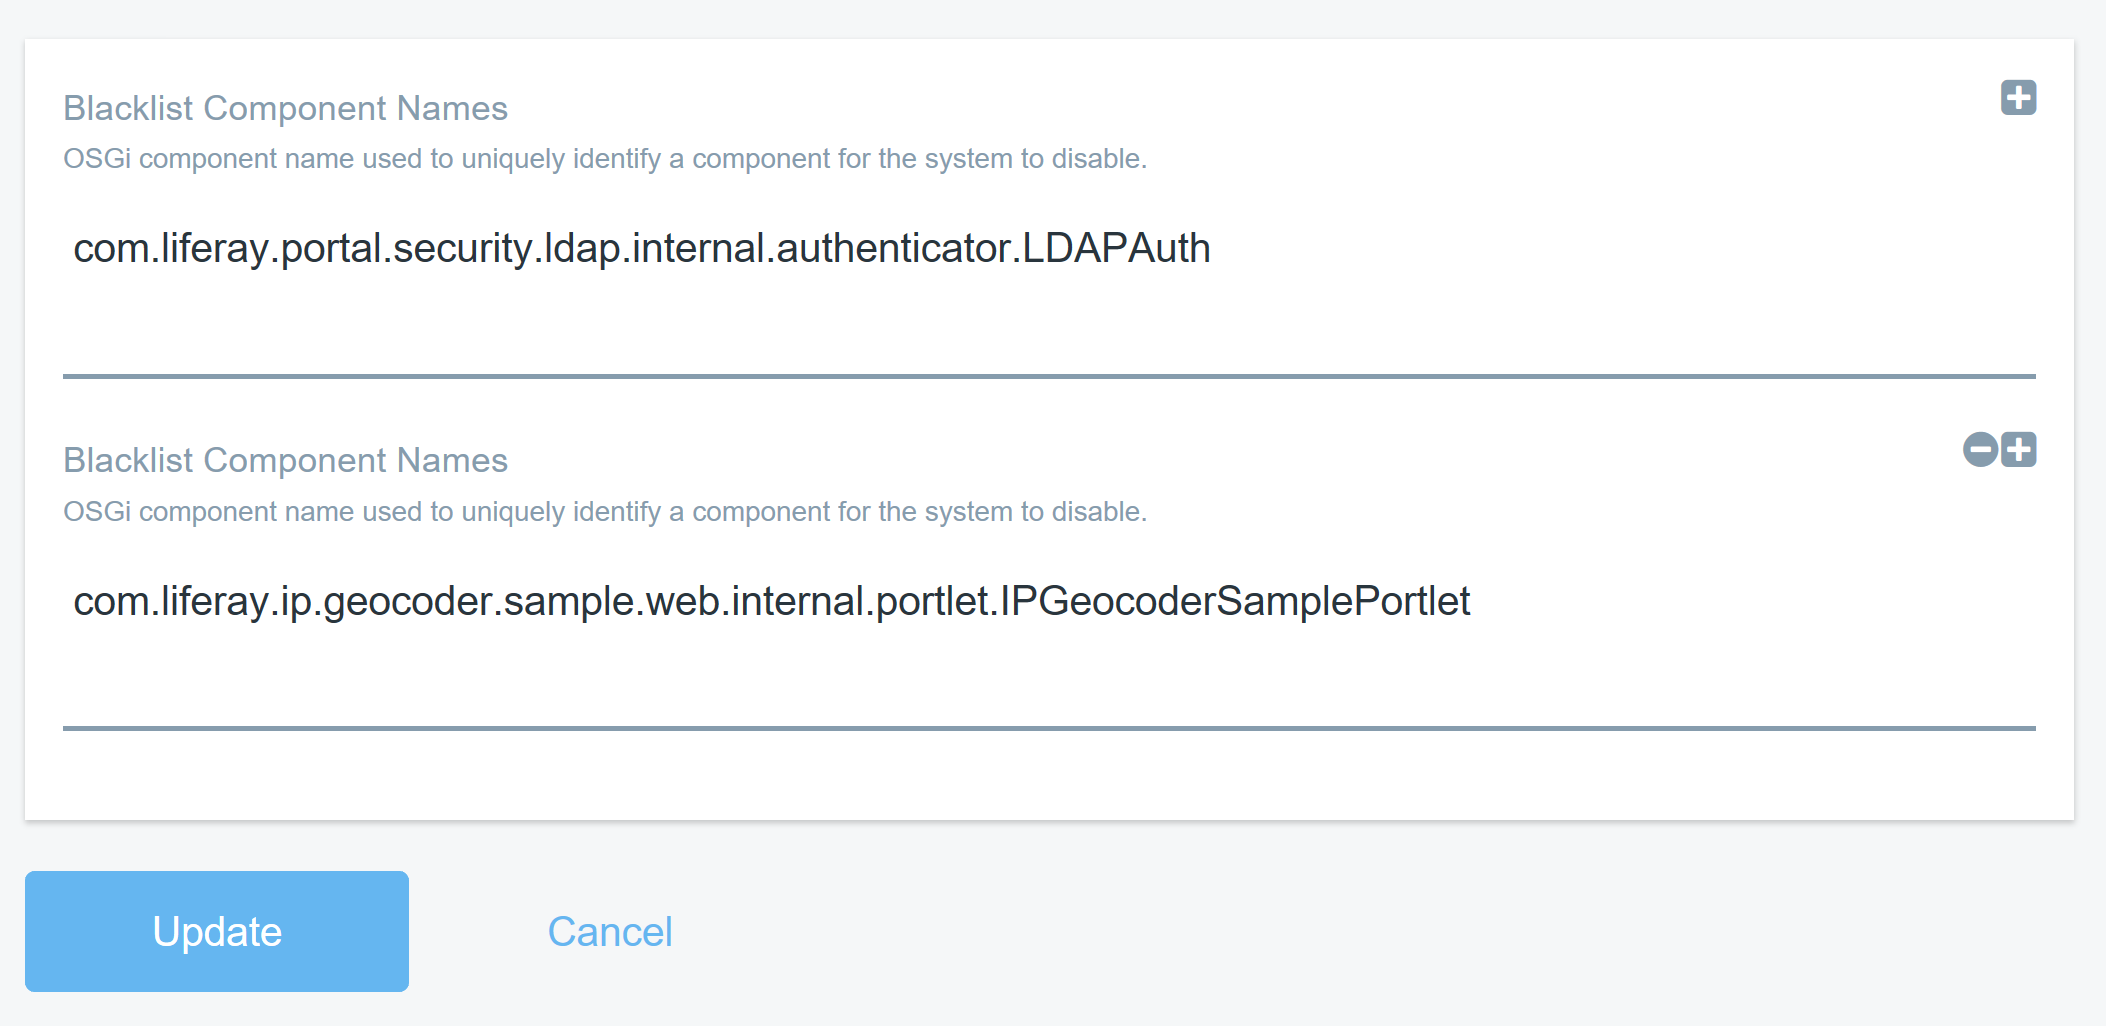 Figure 2: This blacklist disables the components com.liferay.portal.security.ldap.internal.authenticator.LDAPAuth and com.liferay.ip.geocoder.sample.web.internal.portlet.IPGeocoderSamplePortlet.